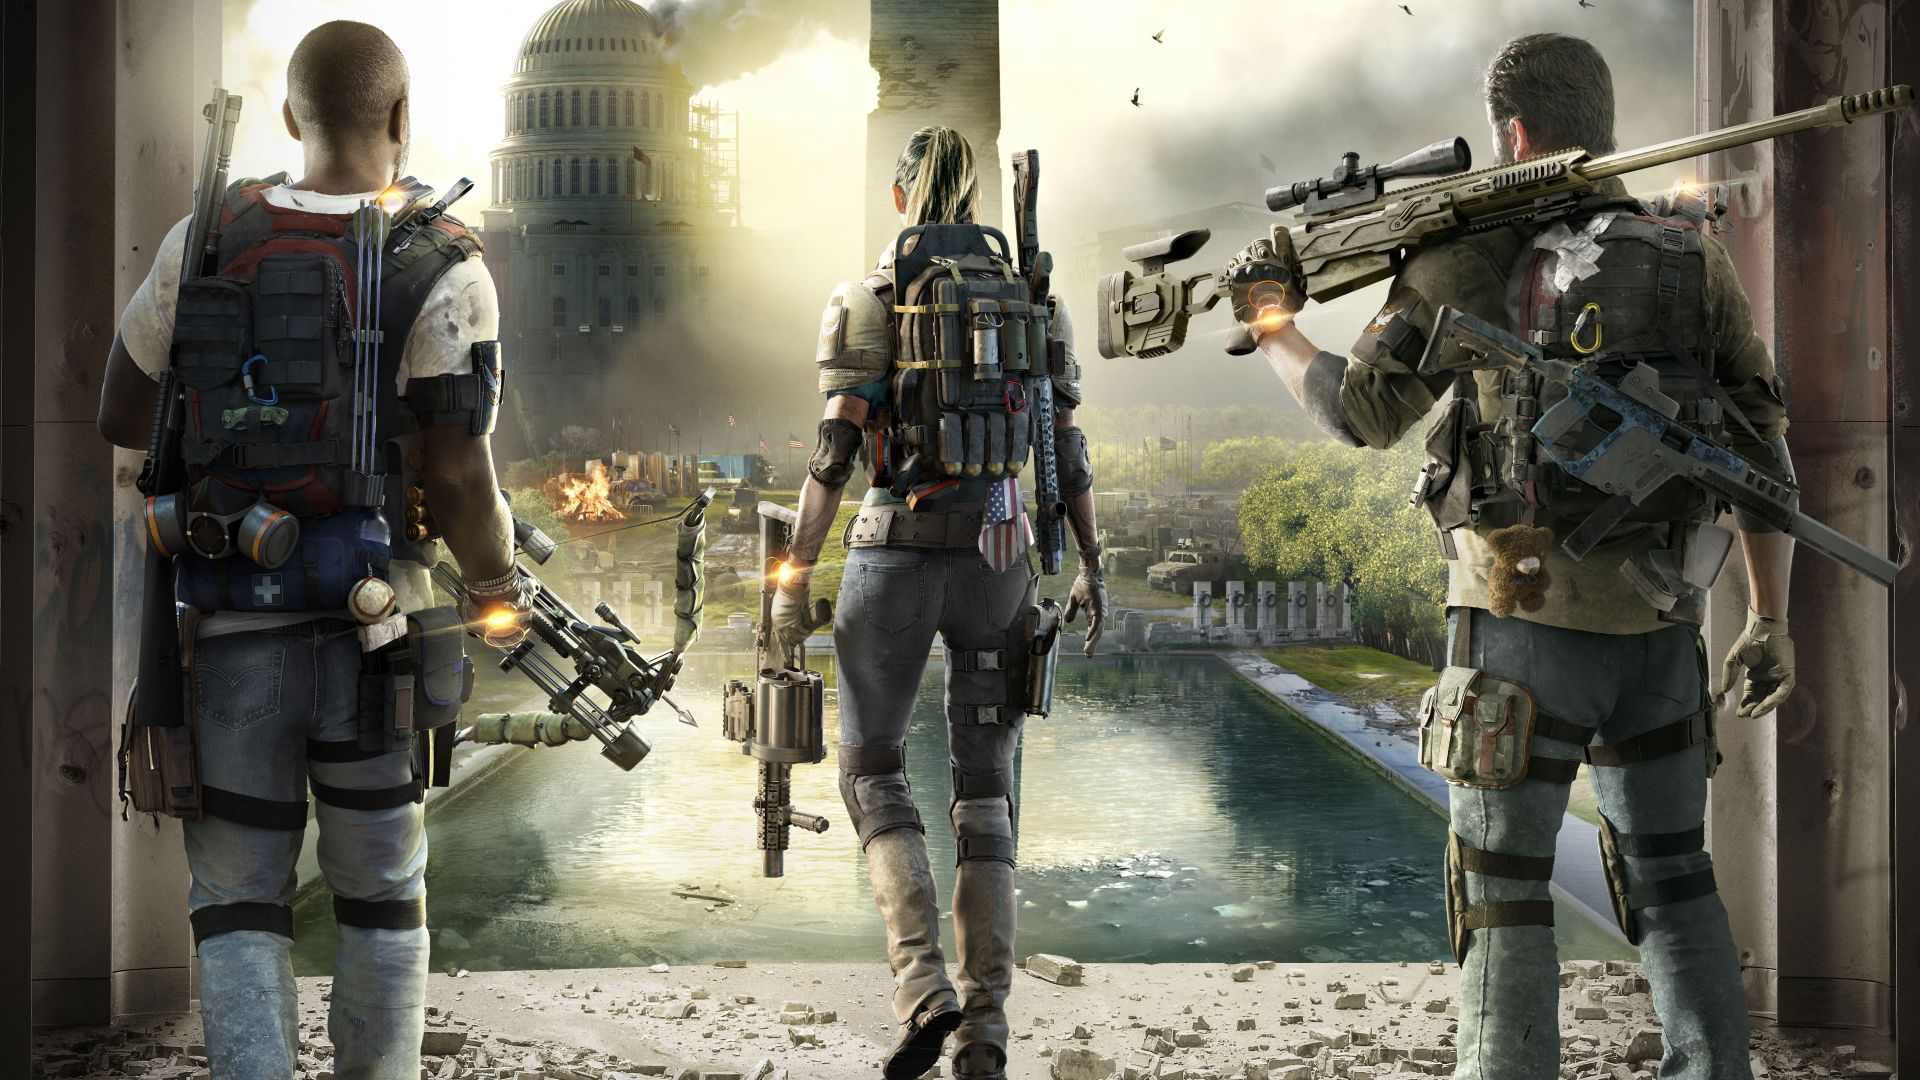 What's The Division 2?